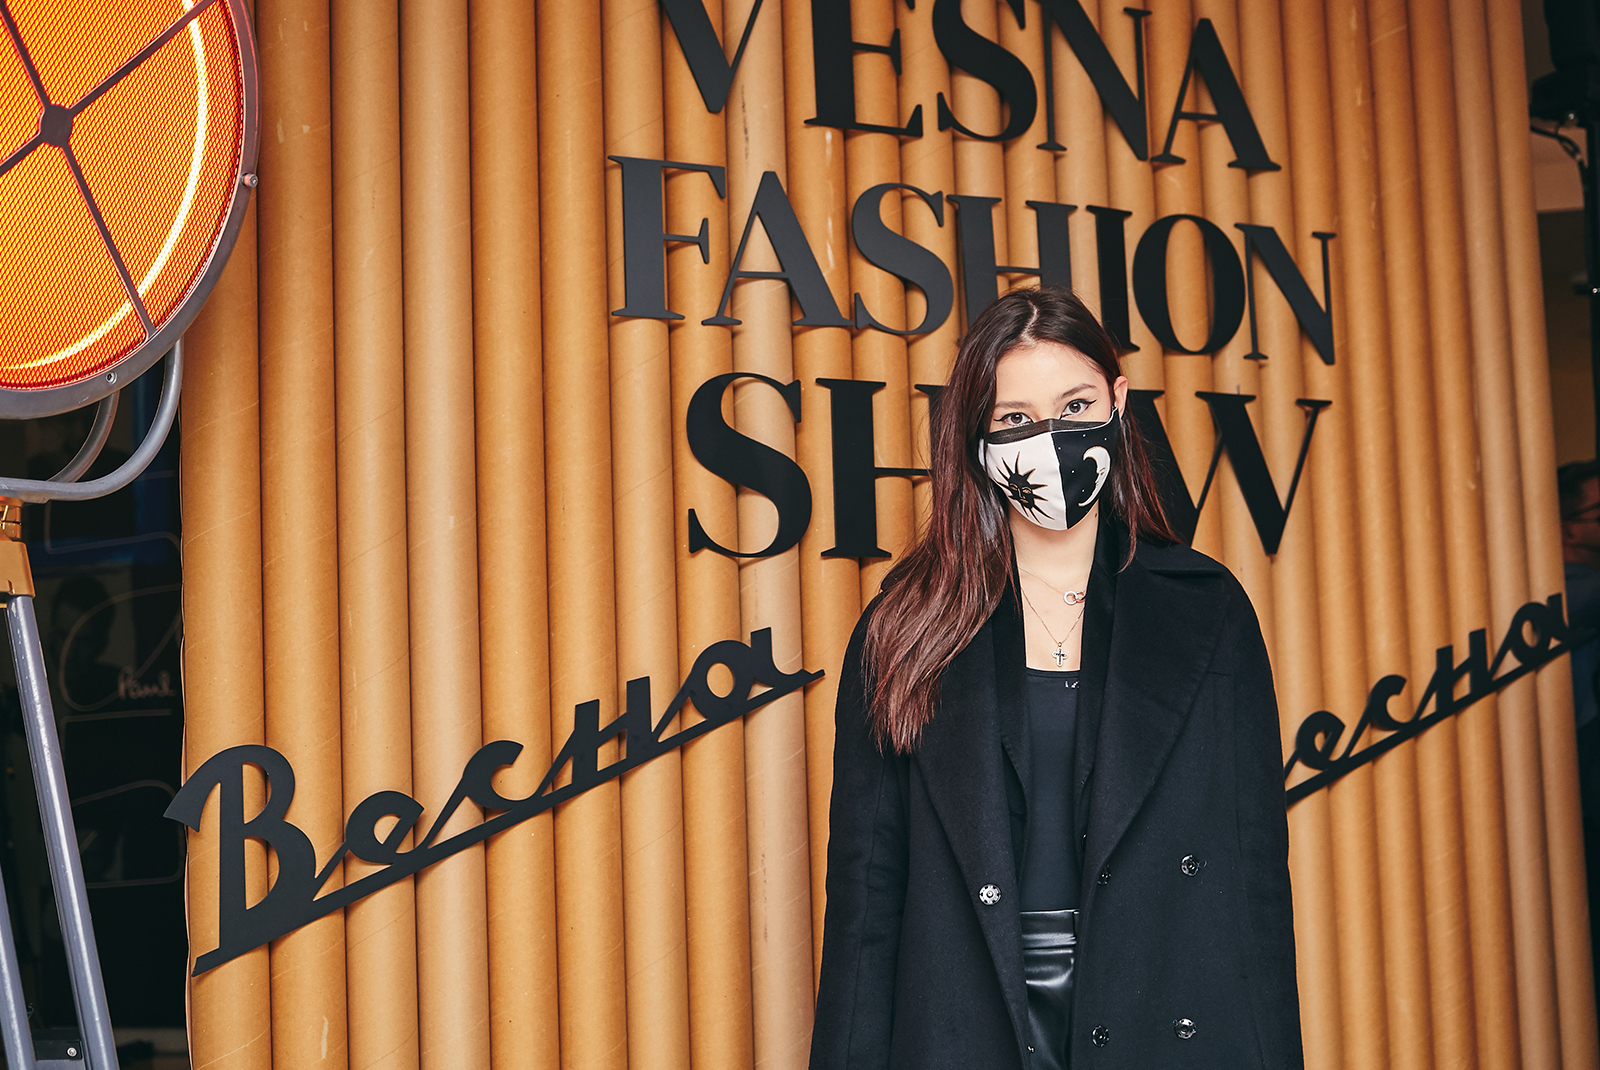 Vesna Fashion Show 2020